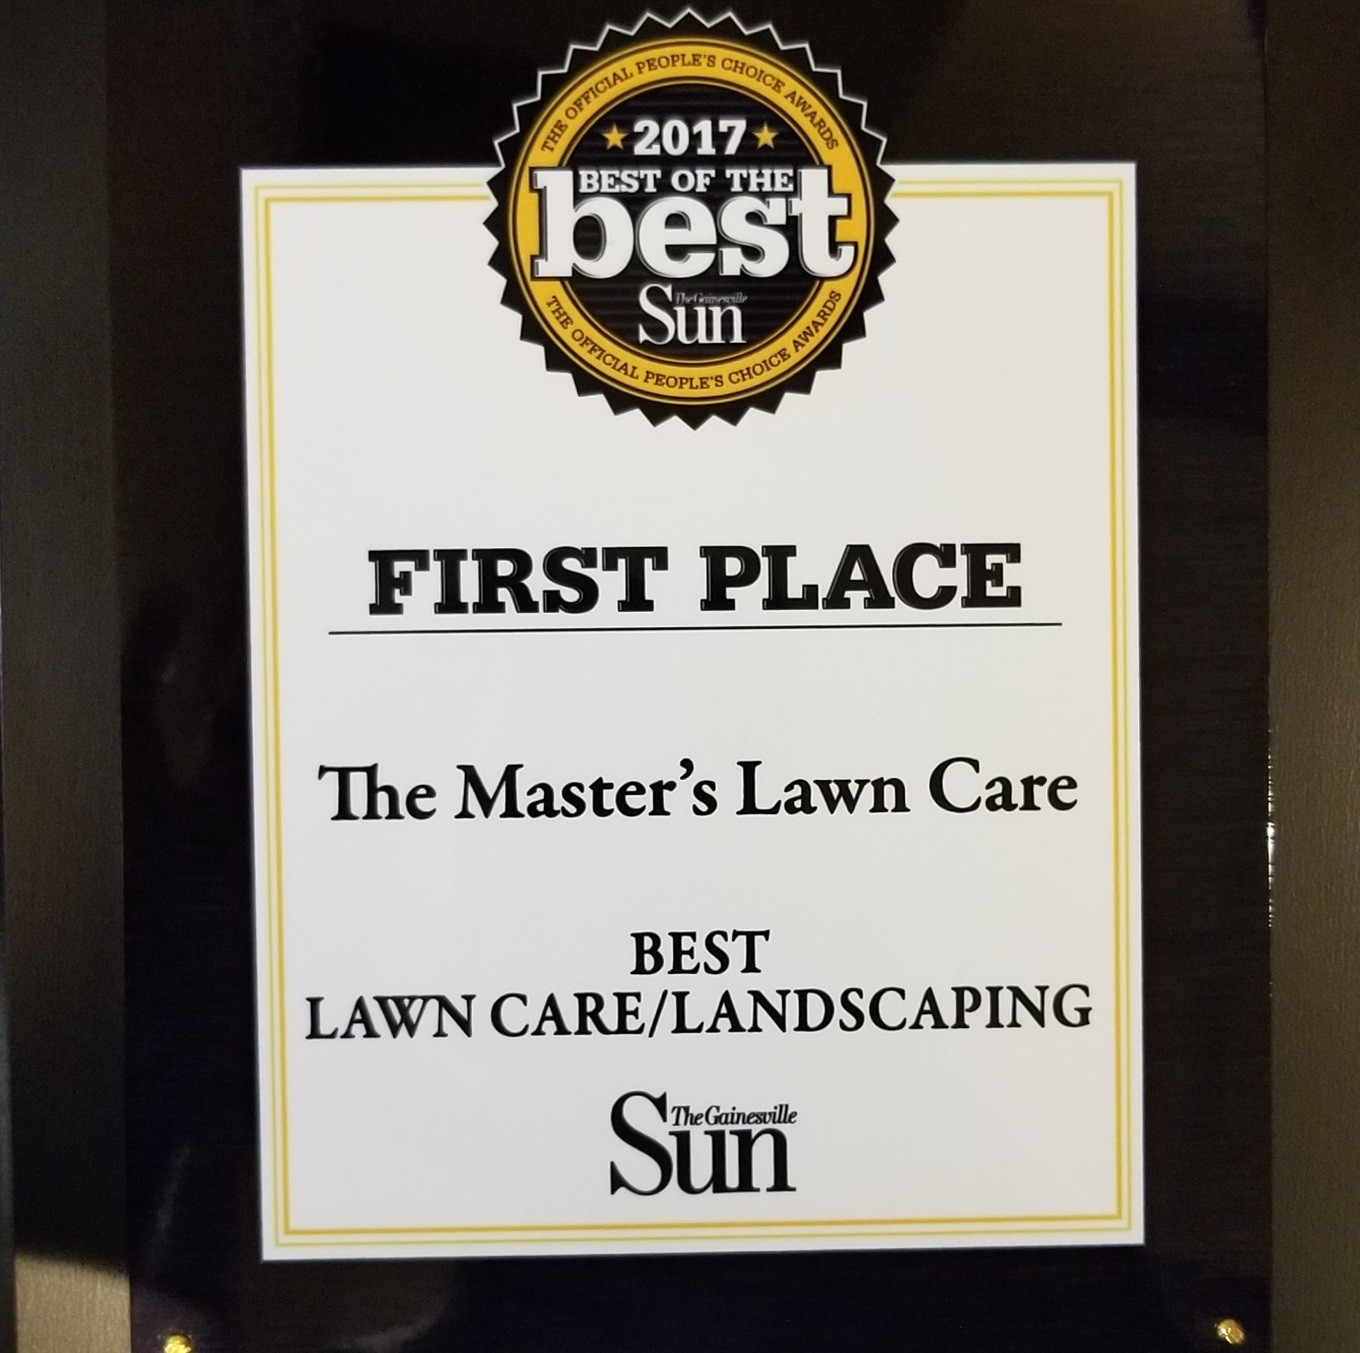 Gainesville Sun's Best of the Best Award for The Master's Lawn Care